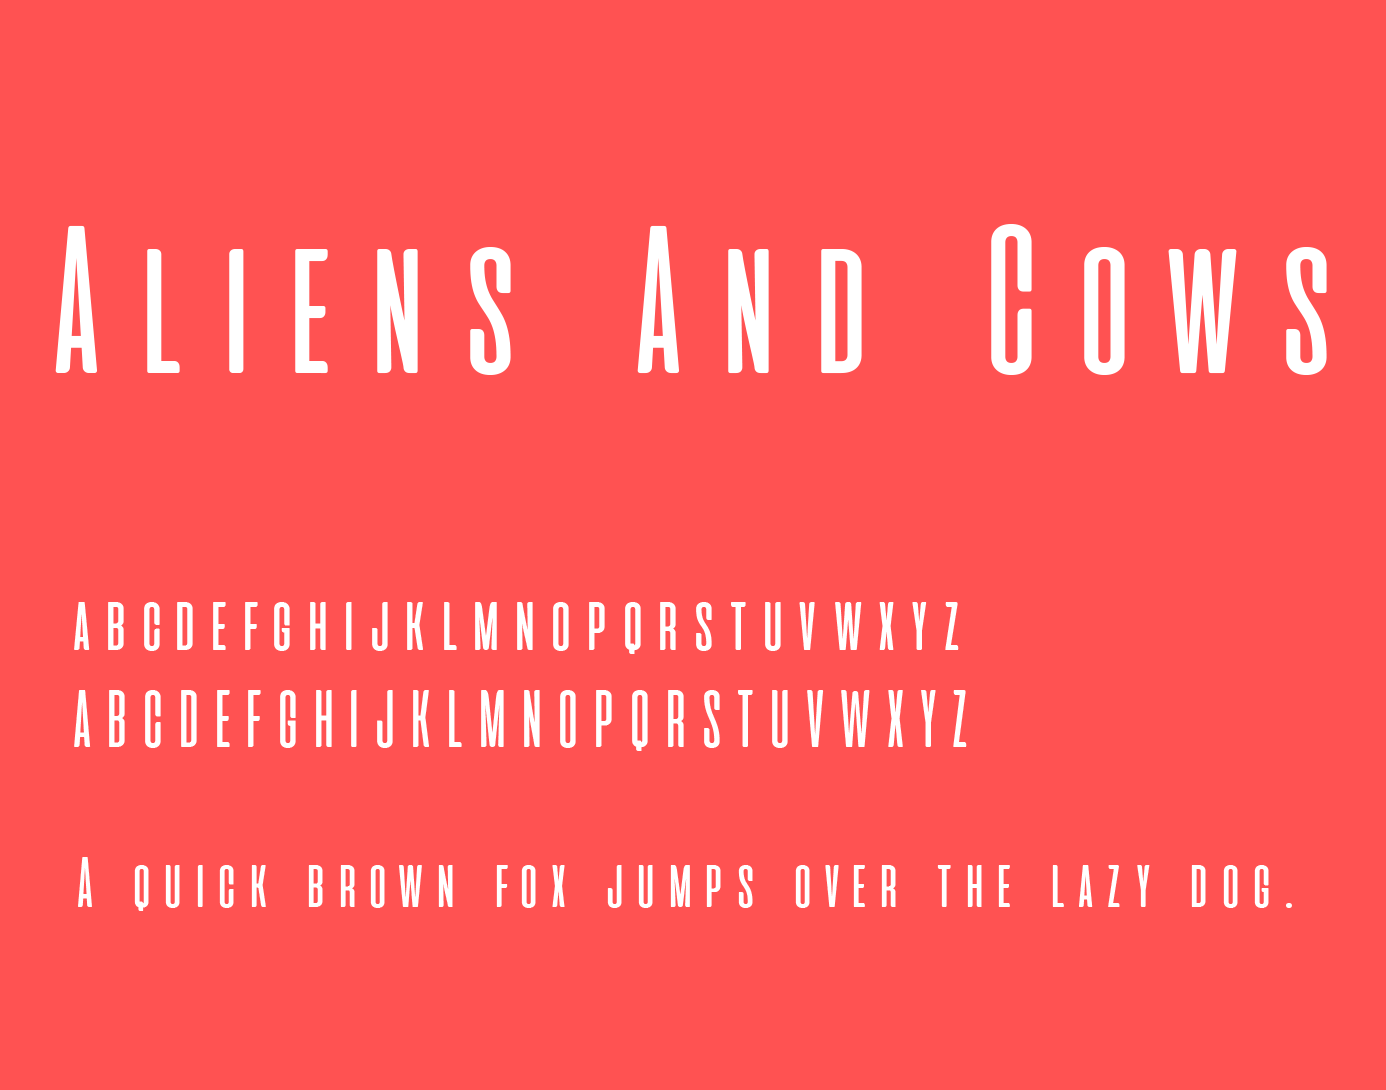 aliens-and-cows